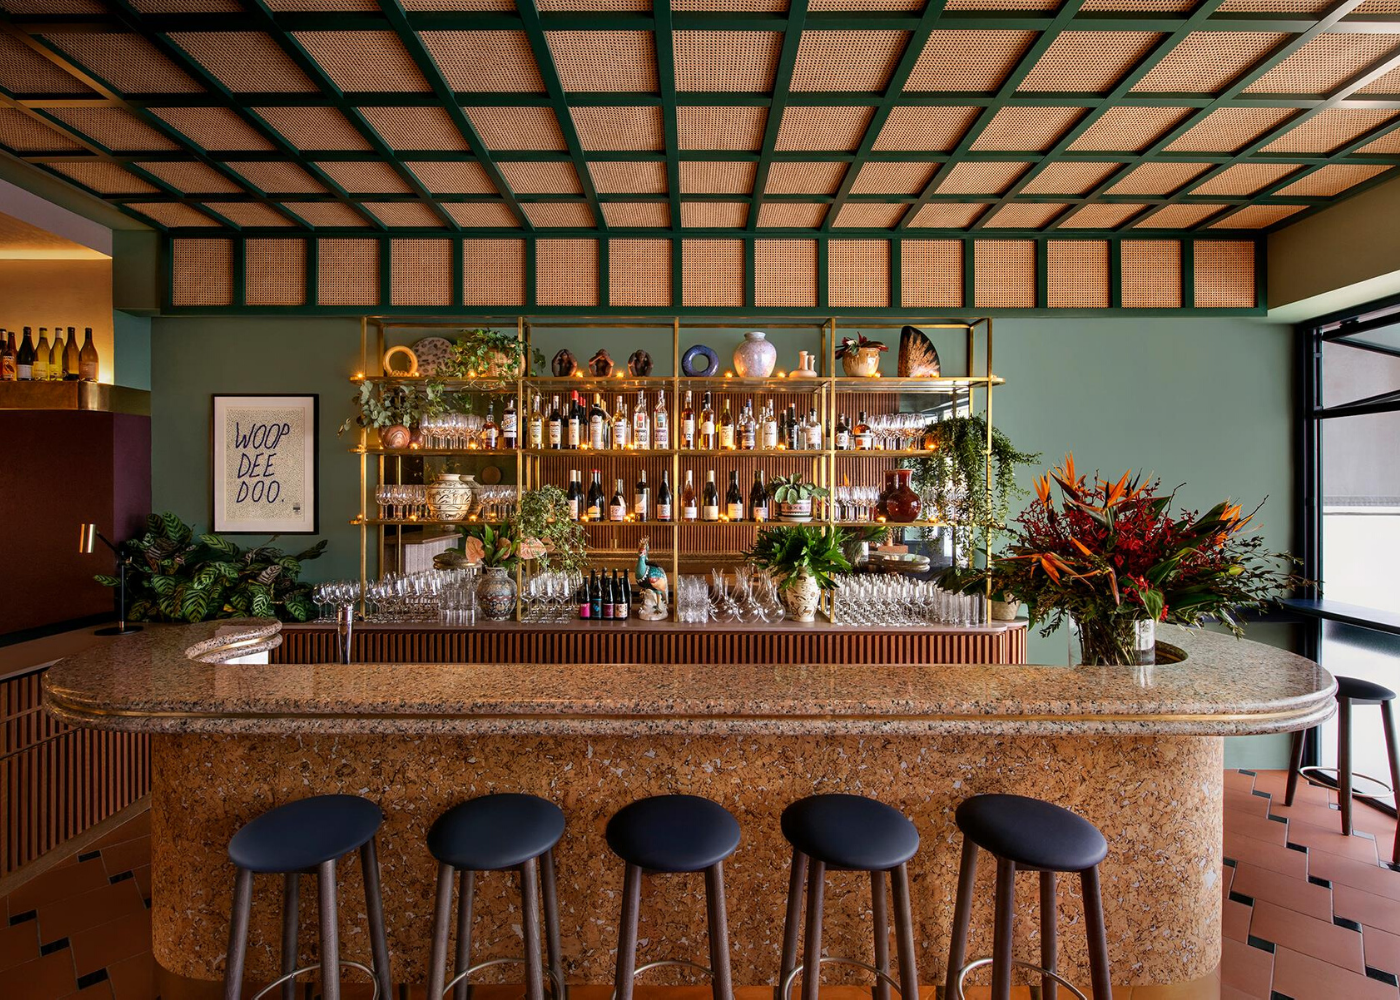 bar counter with liquor bottles